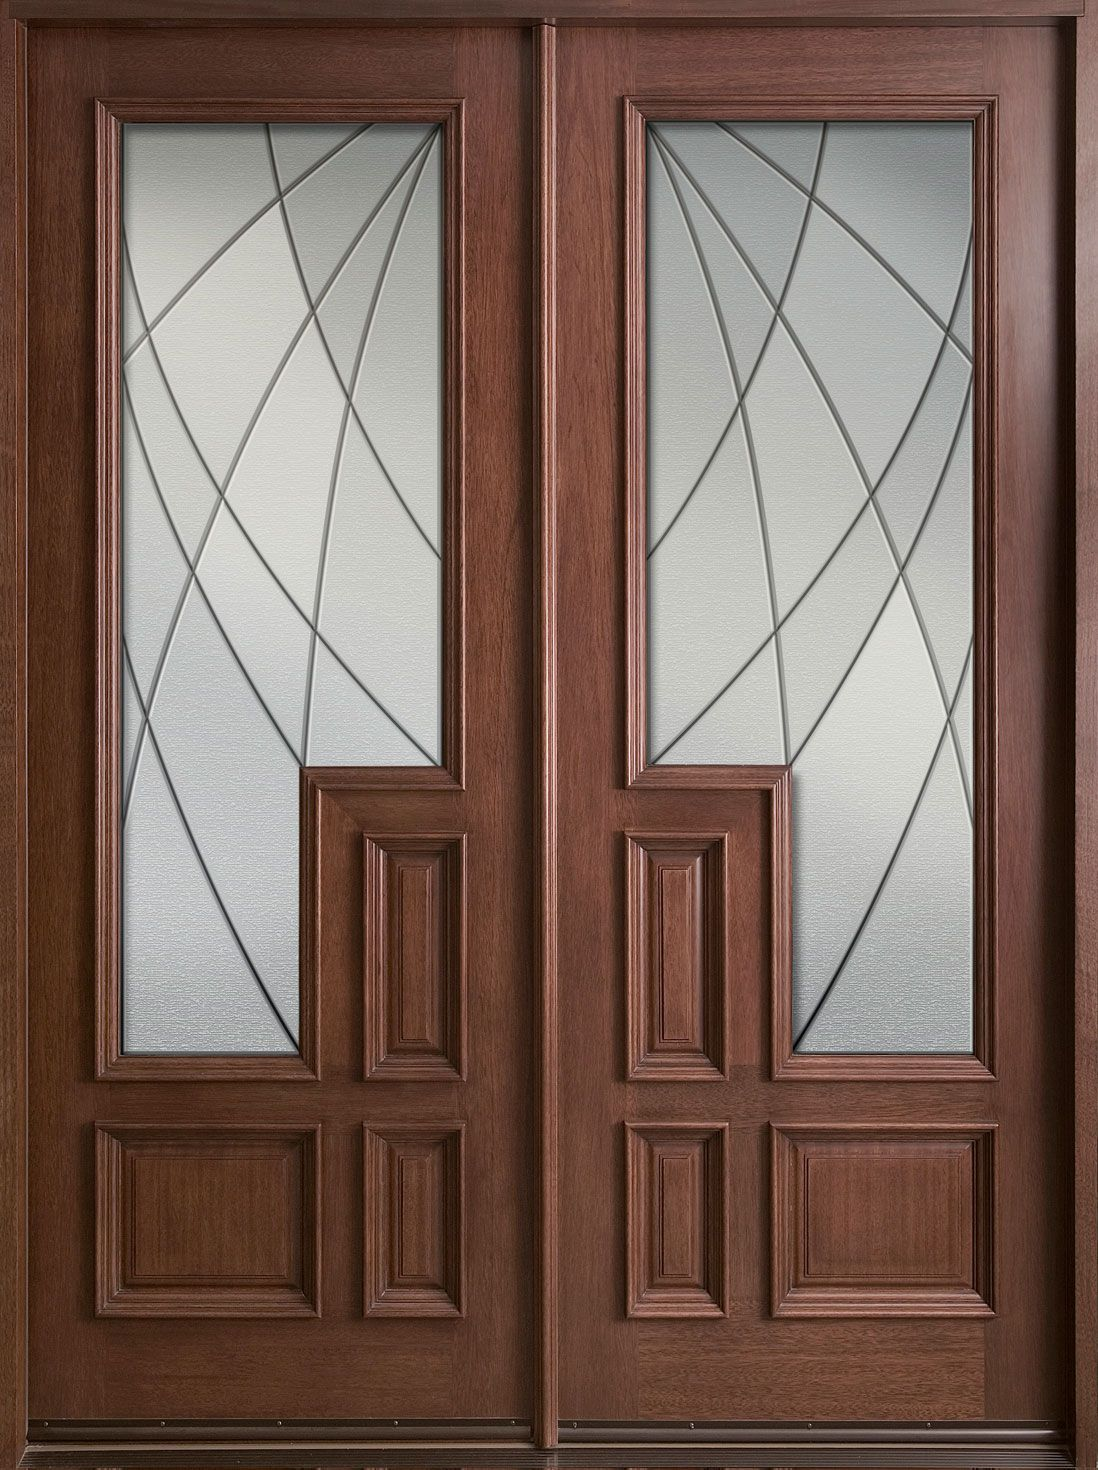 Inspiring double fiberglass entry door as furniture for for Exterior house doors